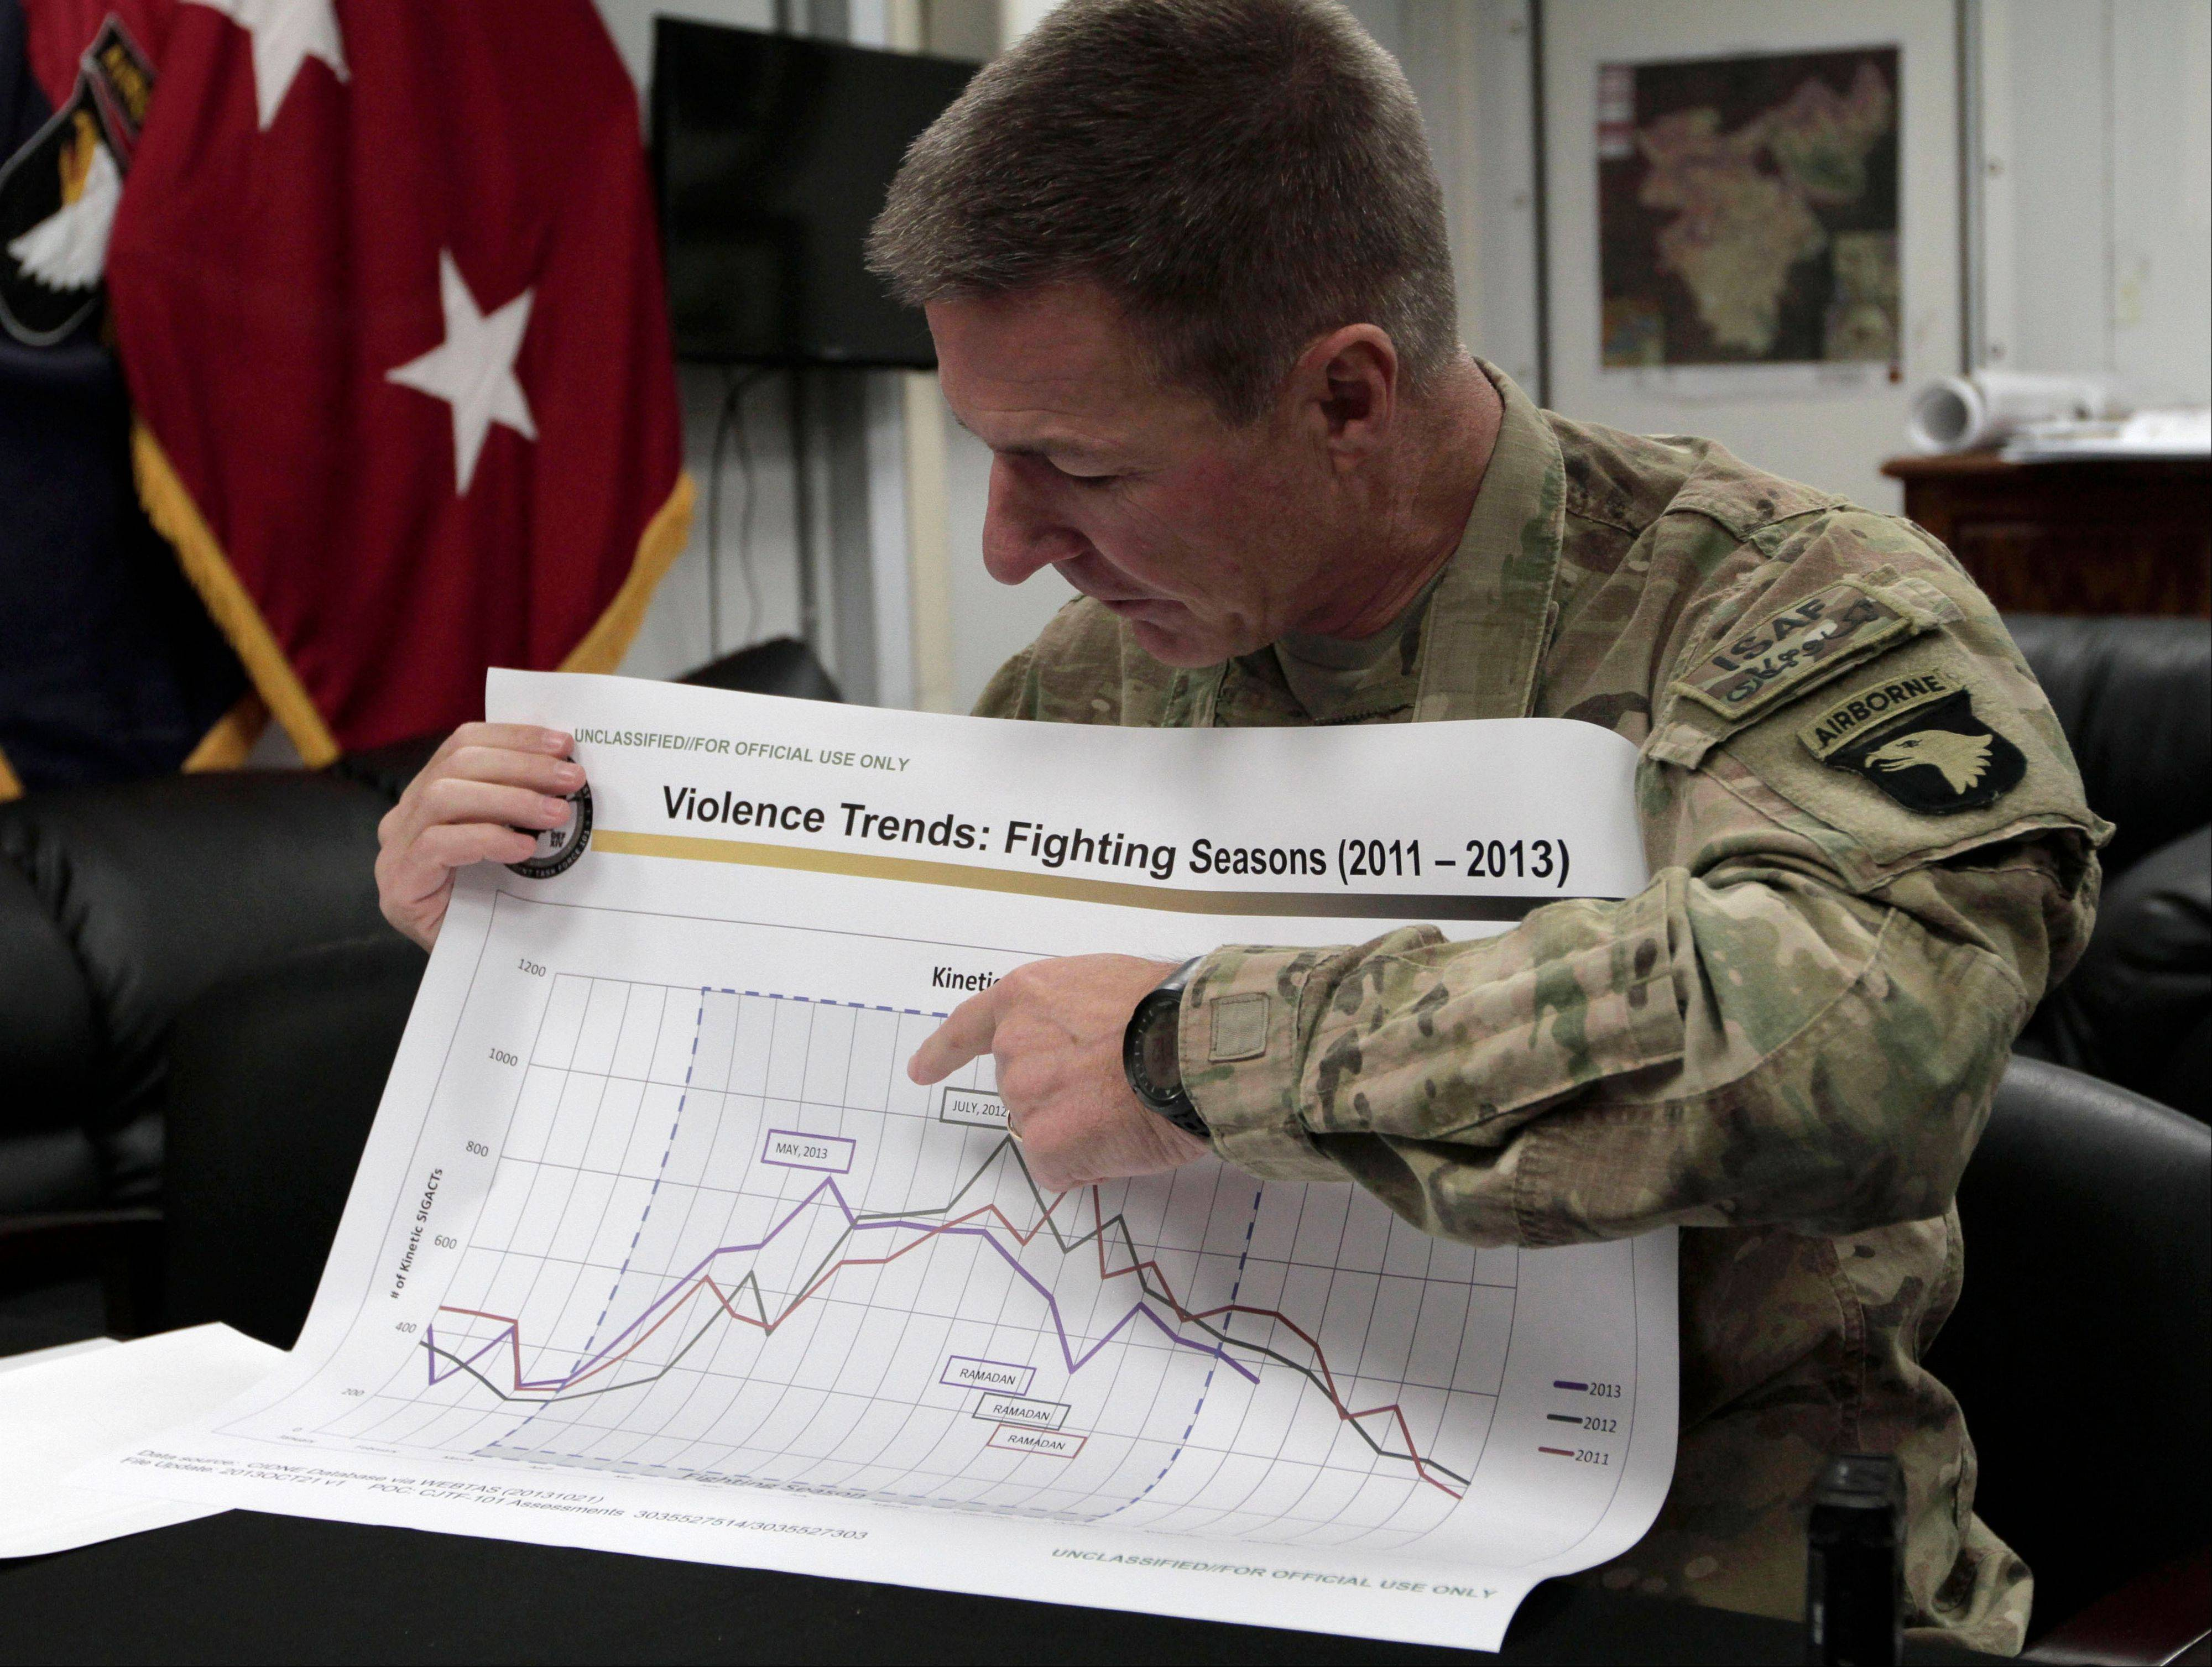 U.S. Maj. Gen. James C. McConville, who commands coalition forces in eastern Afghanistan, holds a chart of fighting seasons at the ISAF base in Bagram, Afghanistan, last month.